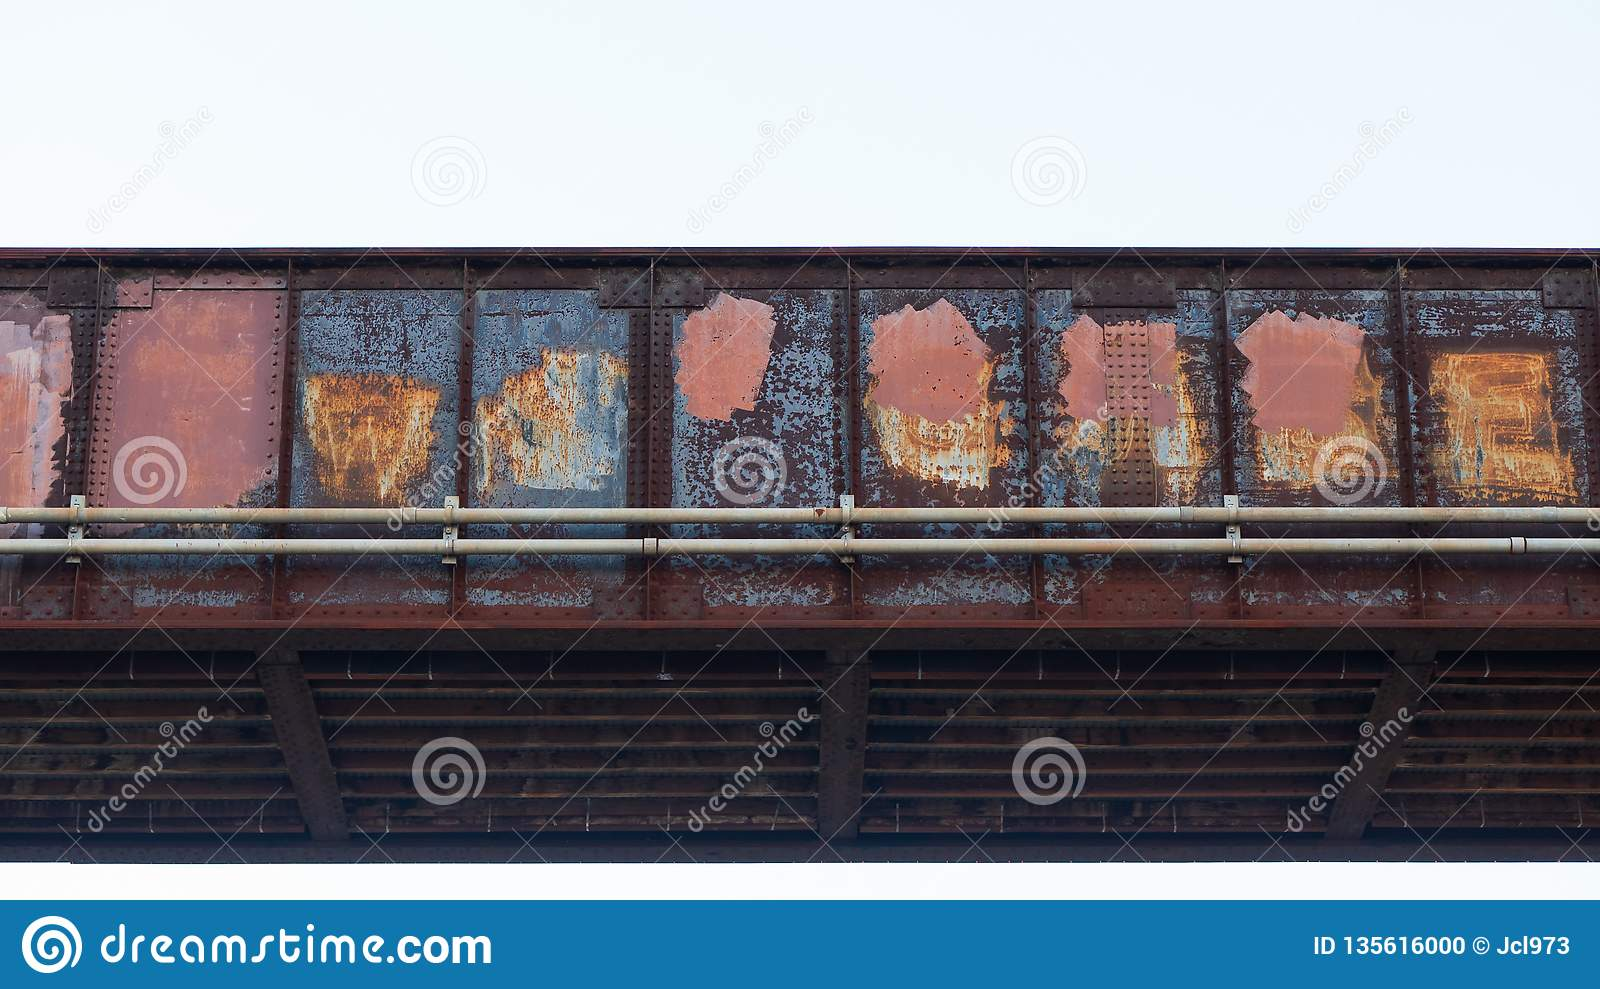 Train bridge made of iron red with rust and covered in paint covering up graffiti